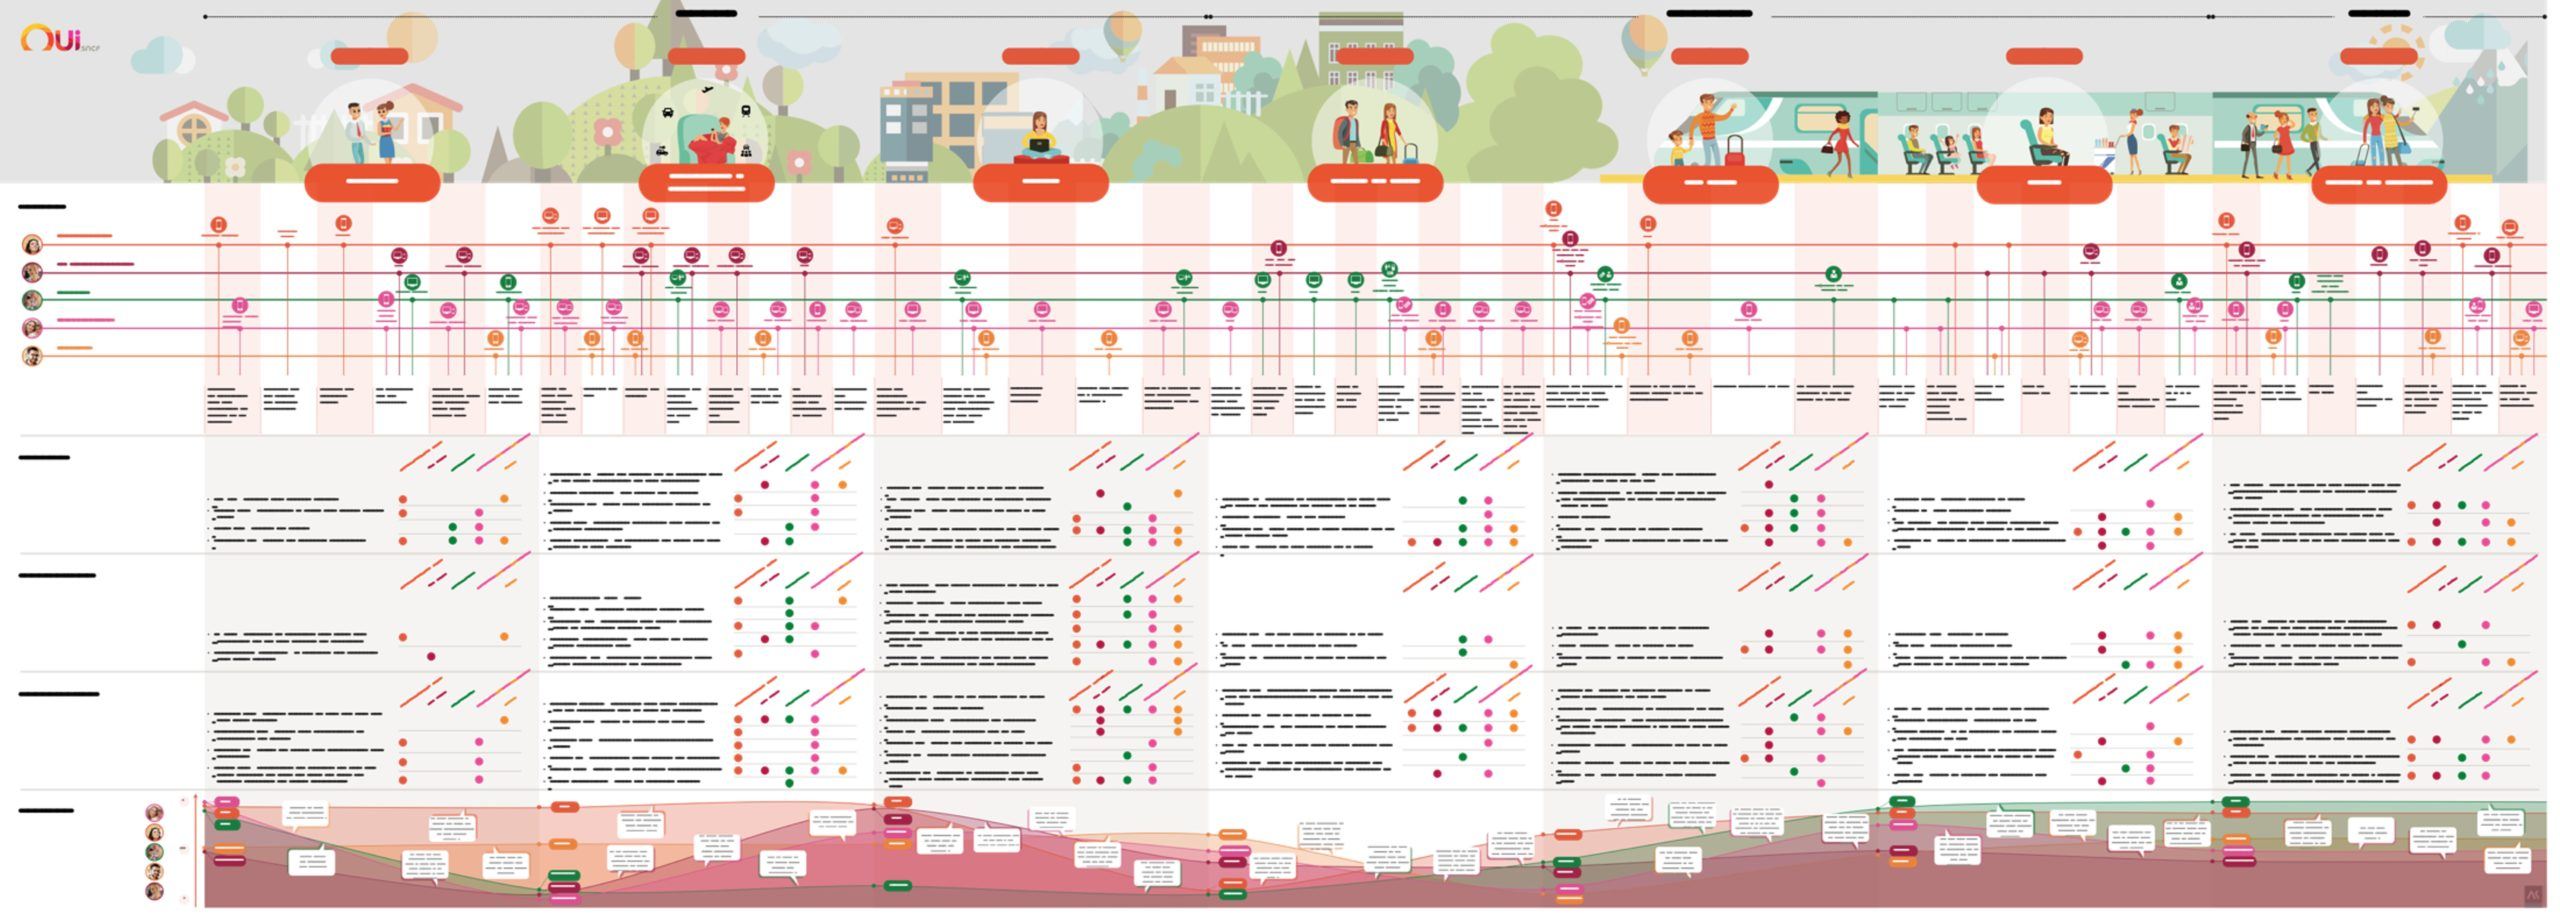 L'experience map OUI.sncf